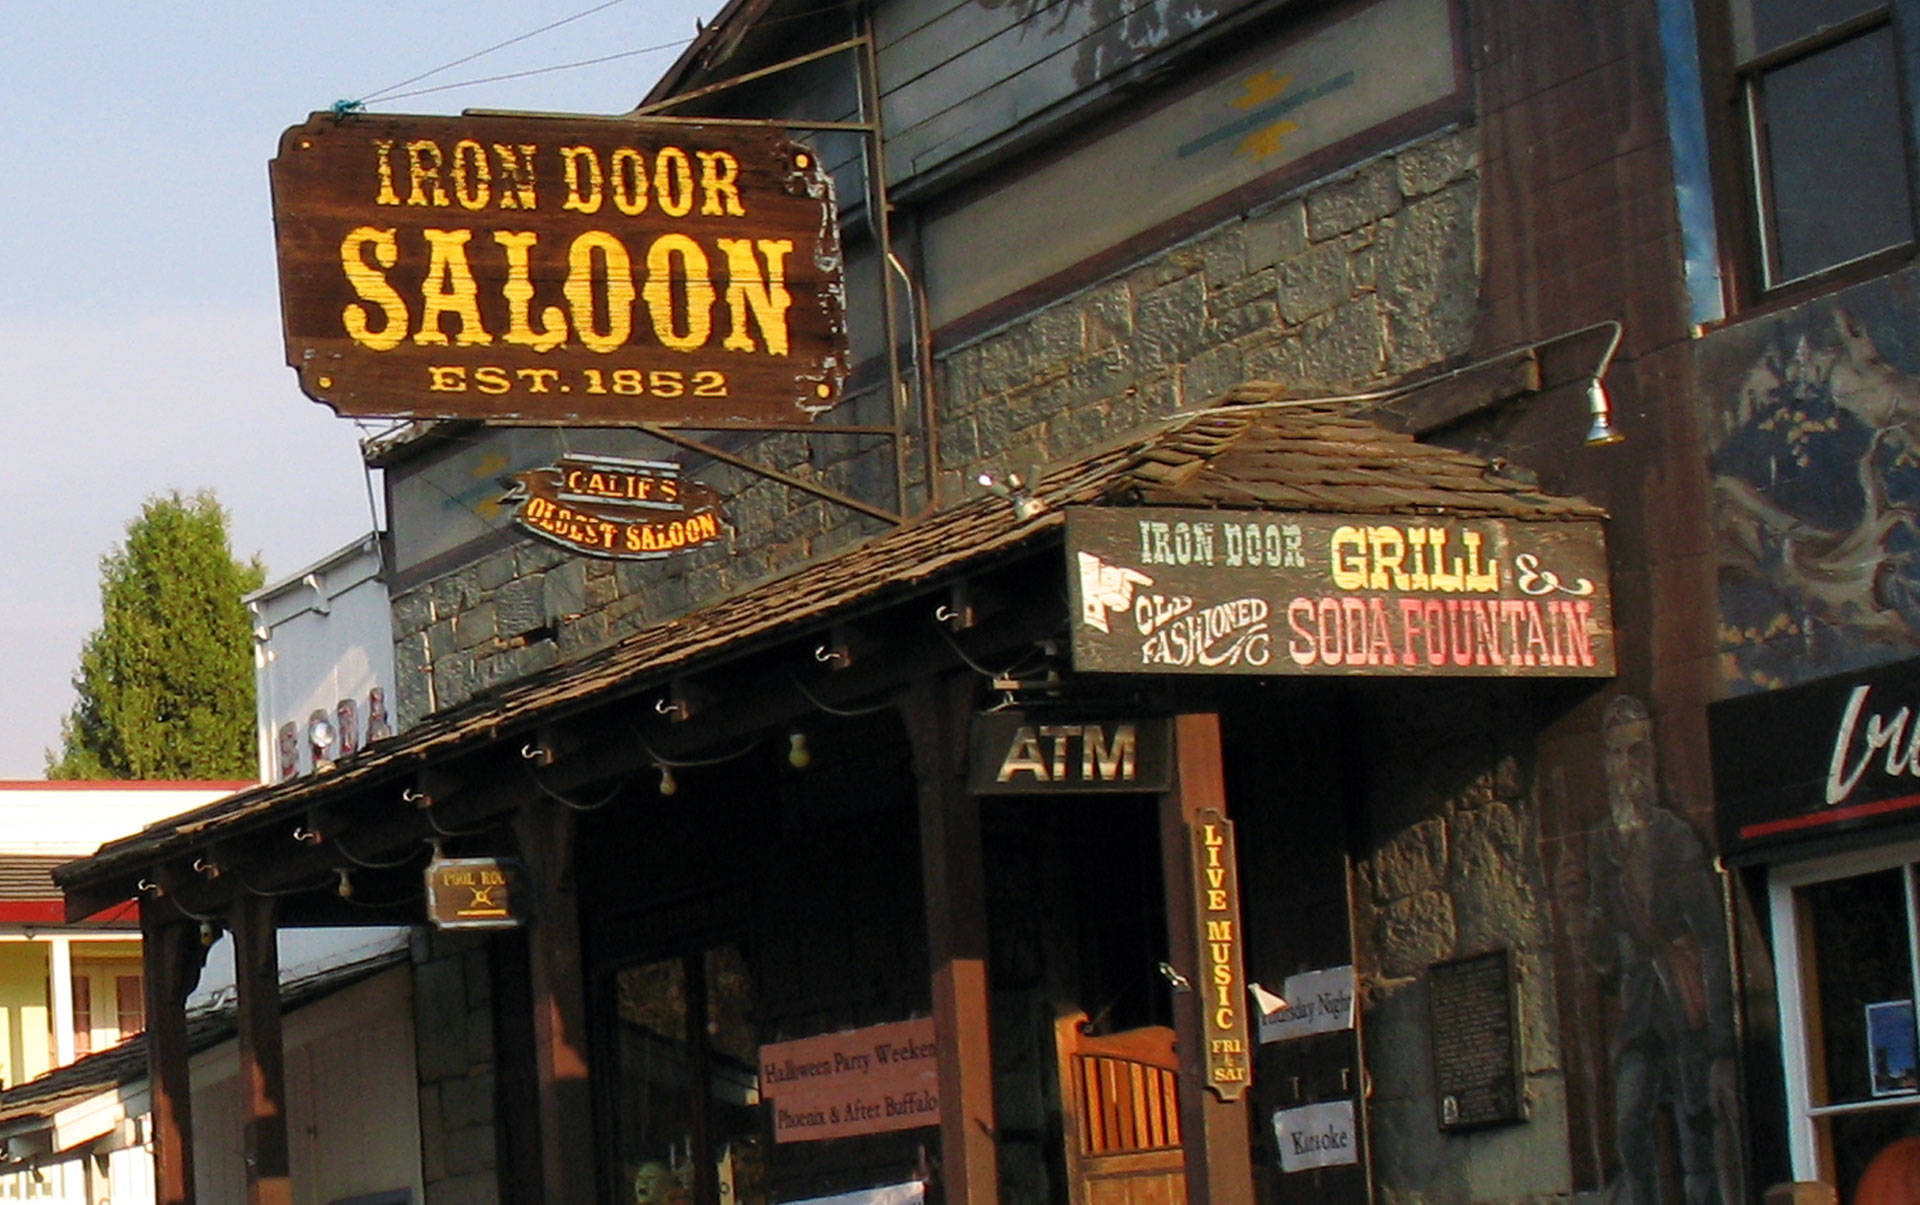 The Iron Door Saloon in Groveland claims to be California's oldest continuously operating bar. Ahren/Flickr